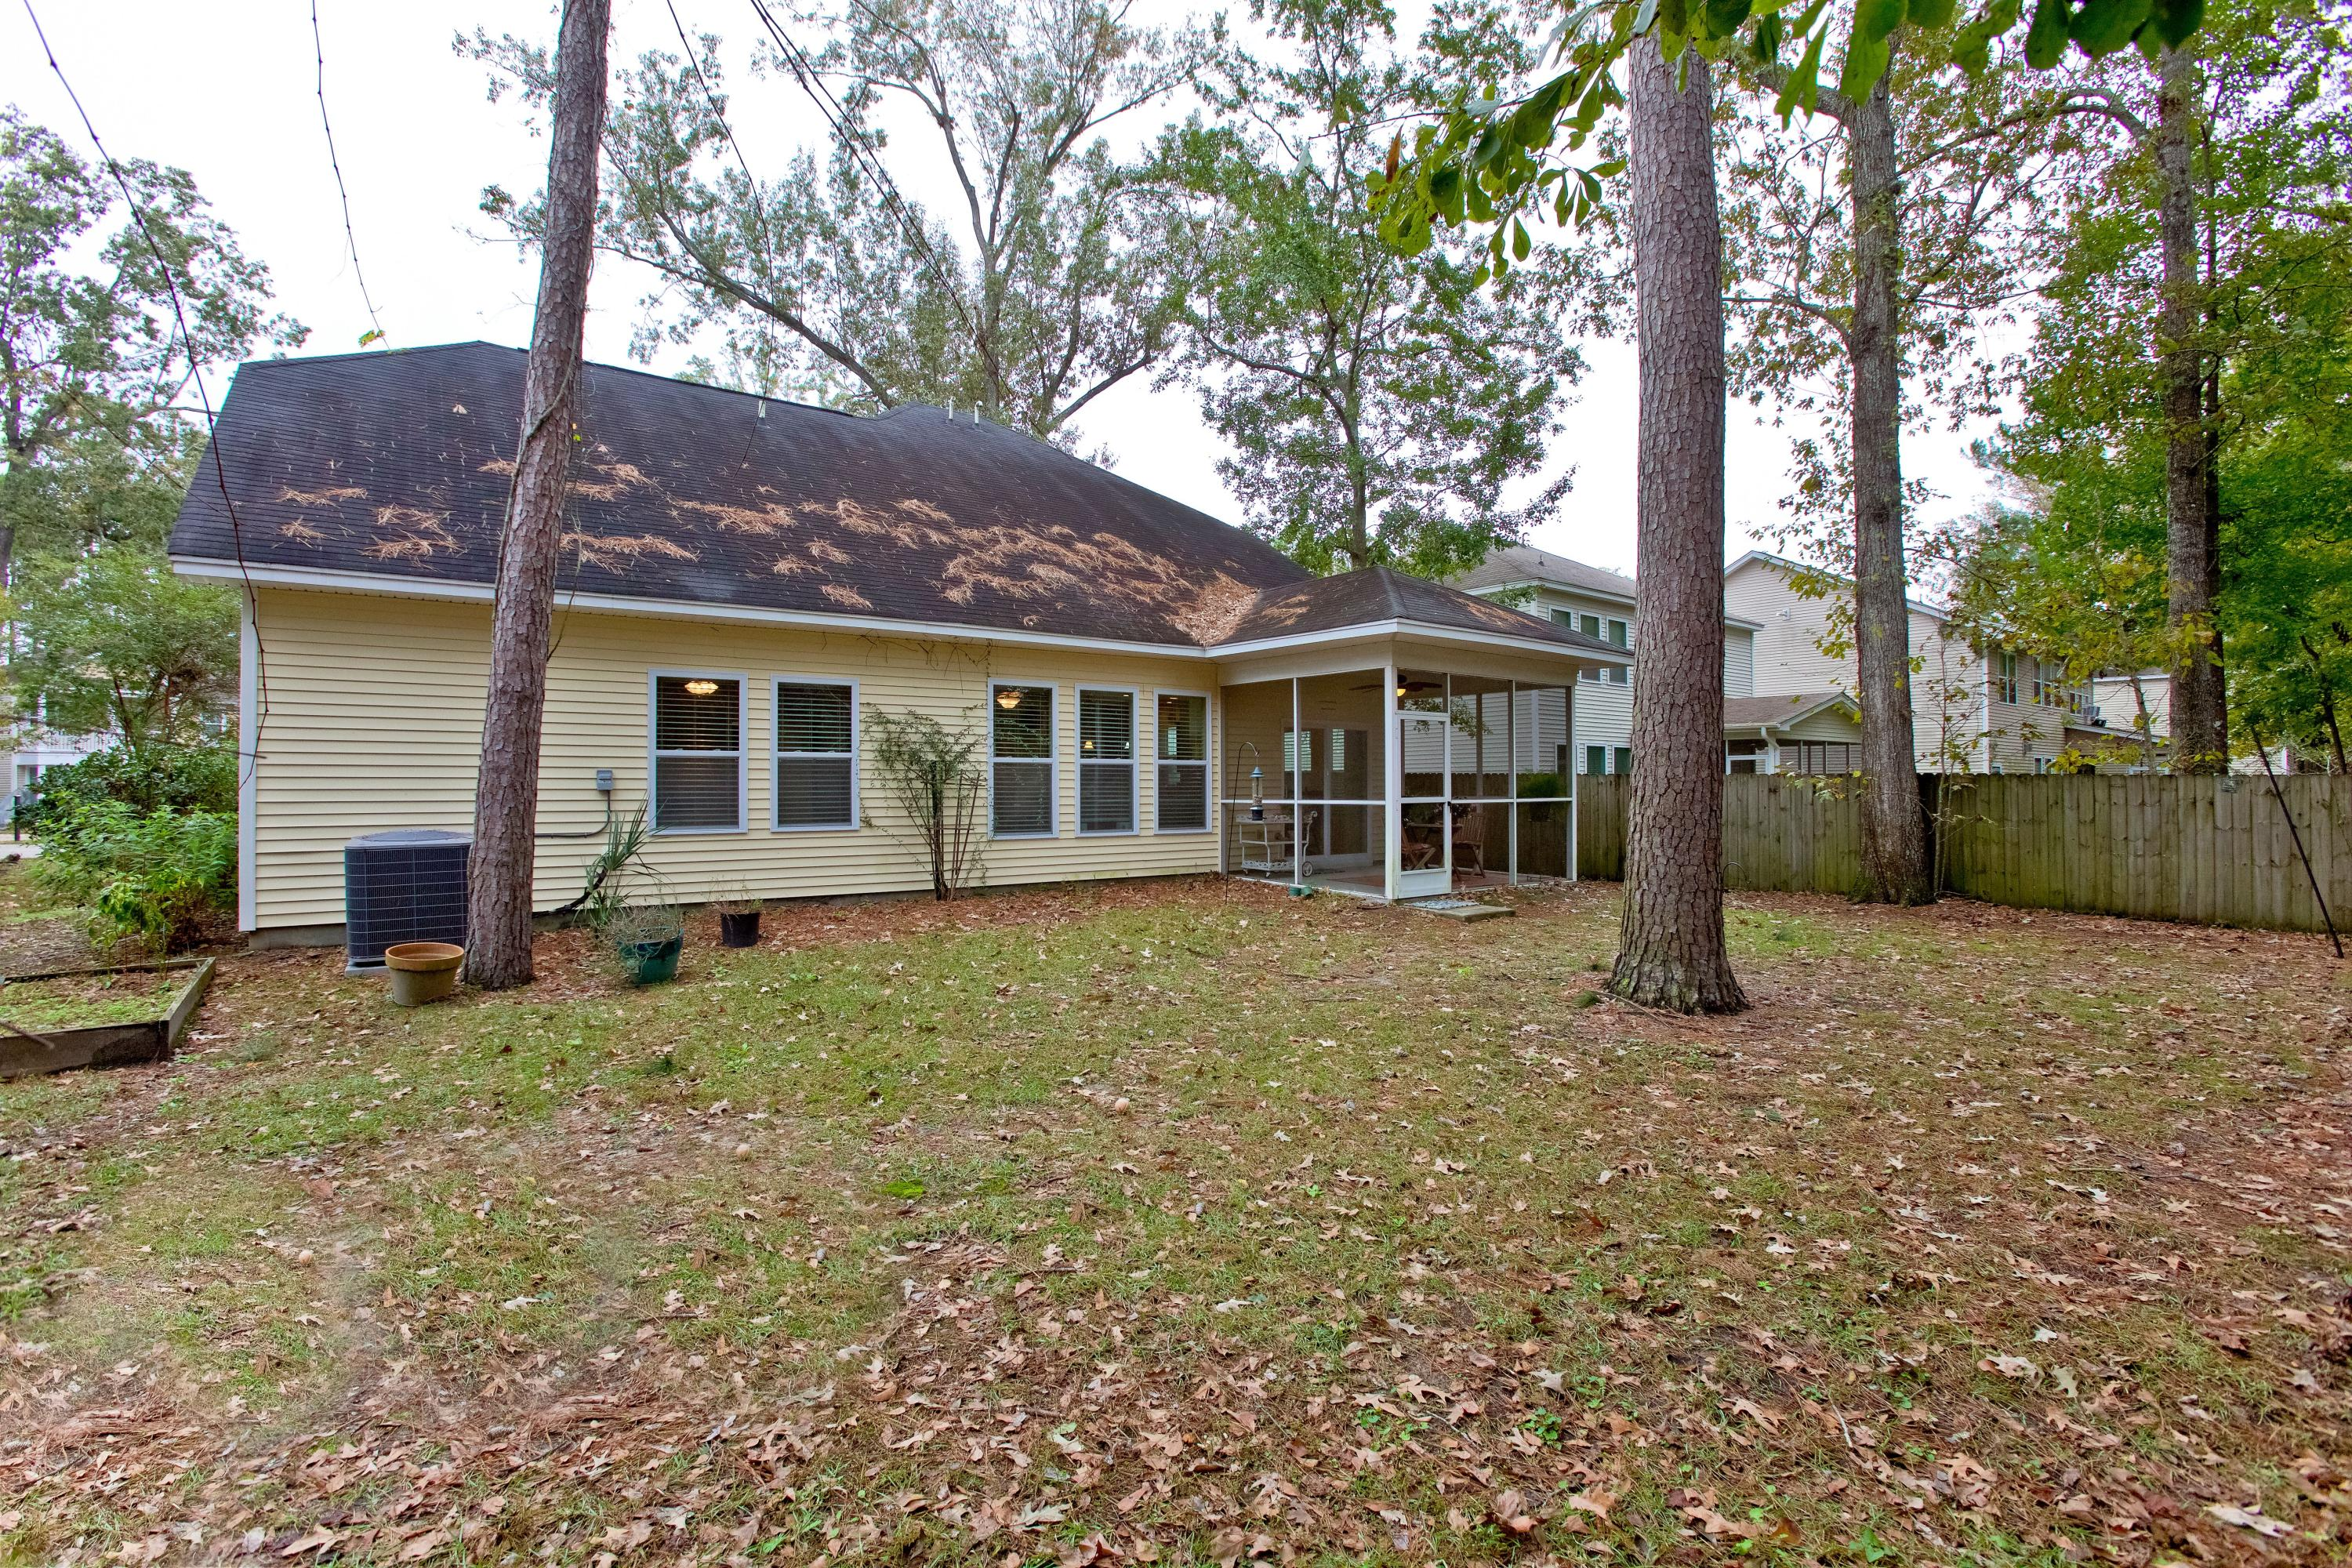 Appian Way Homes For Sale - 8473 Athens, North Charleston, SC - 16